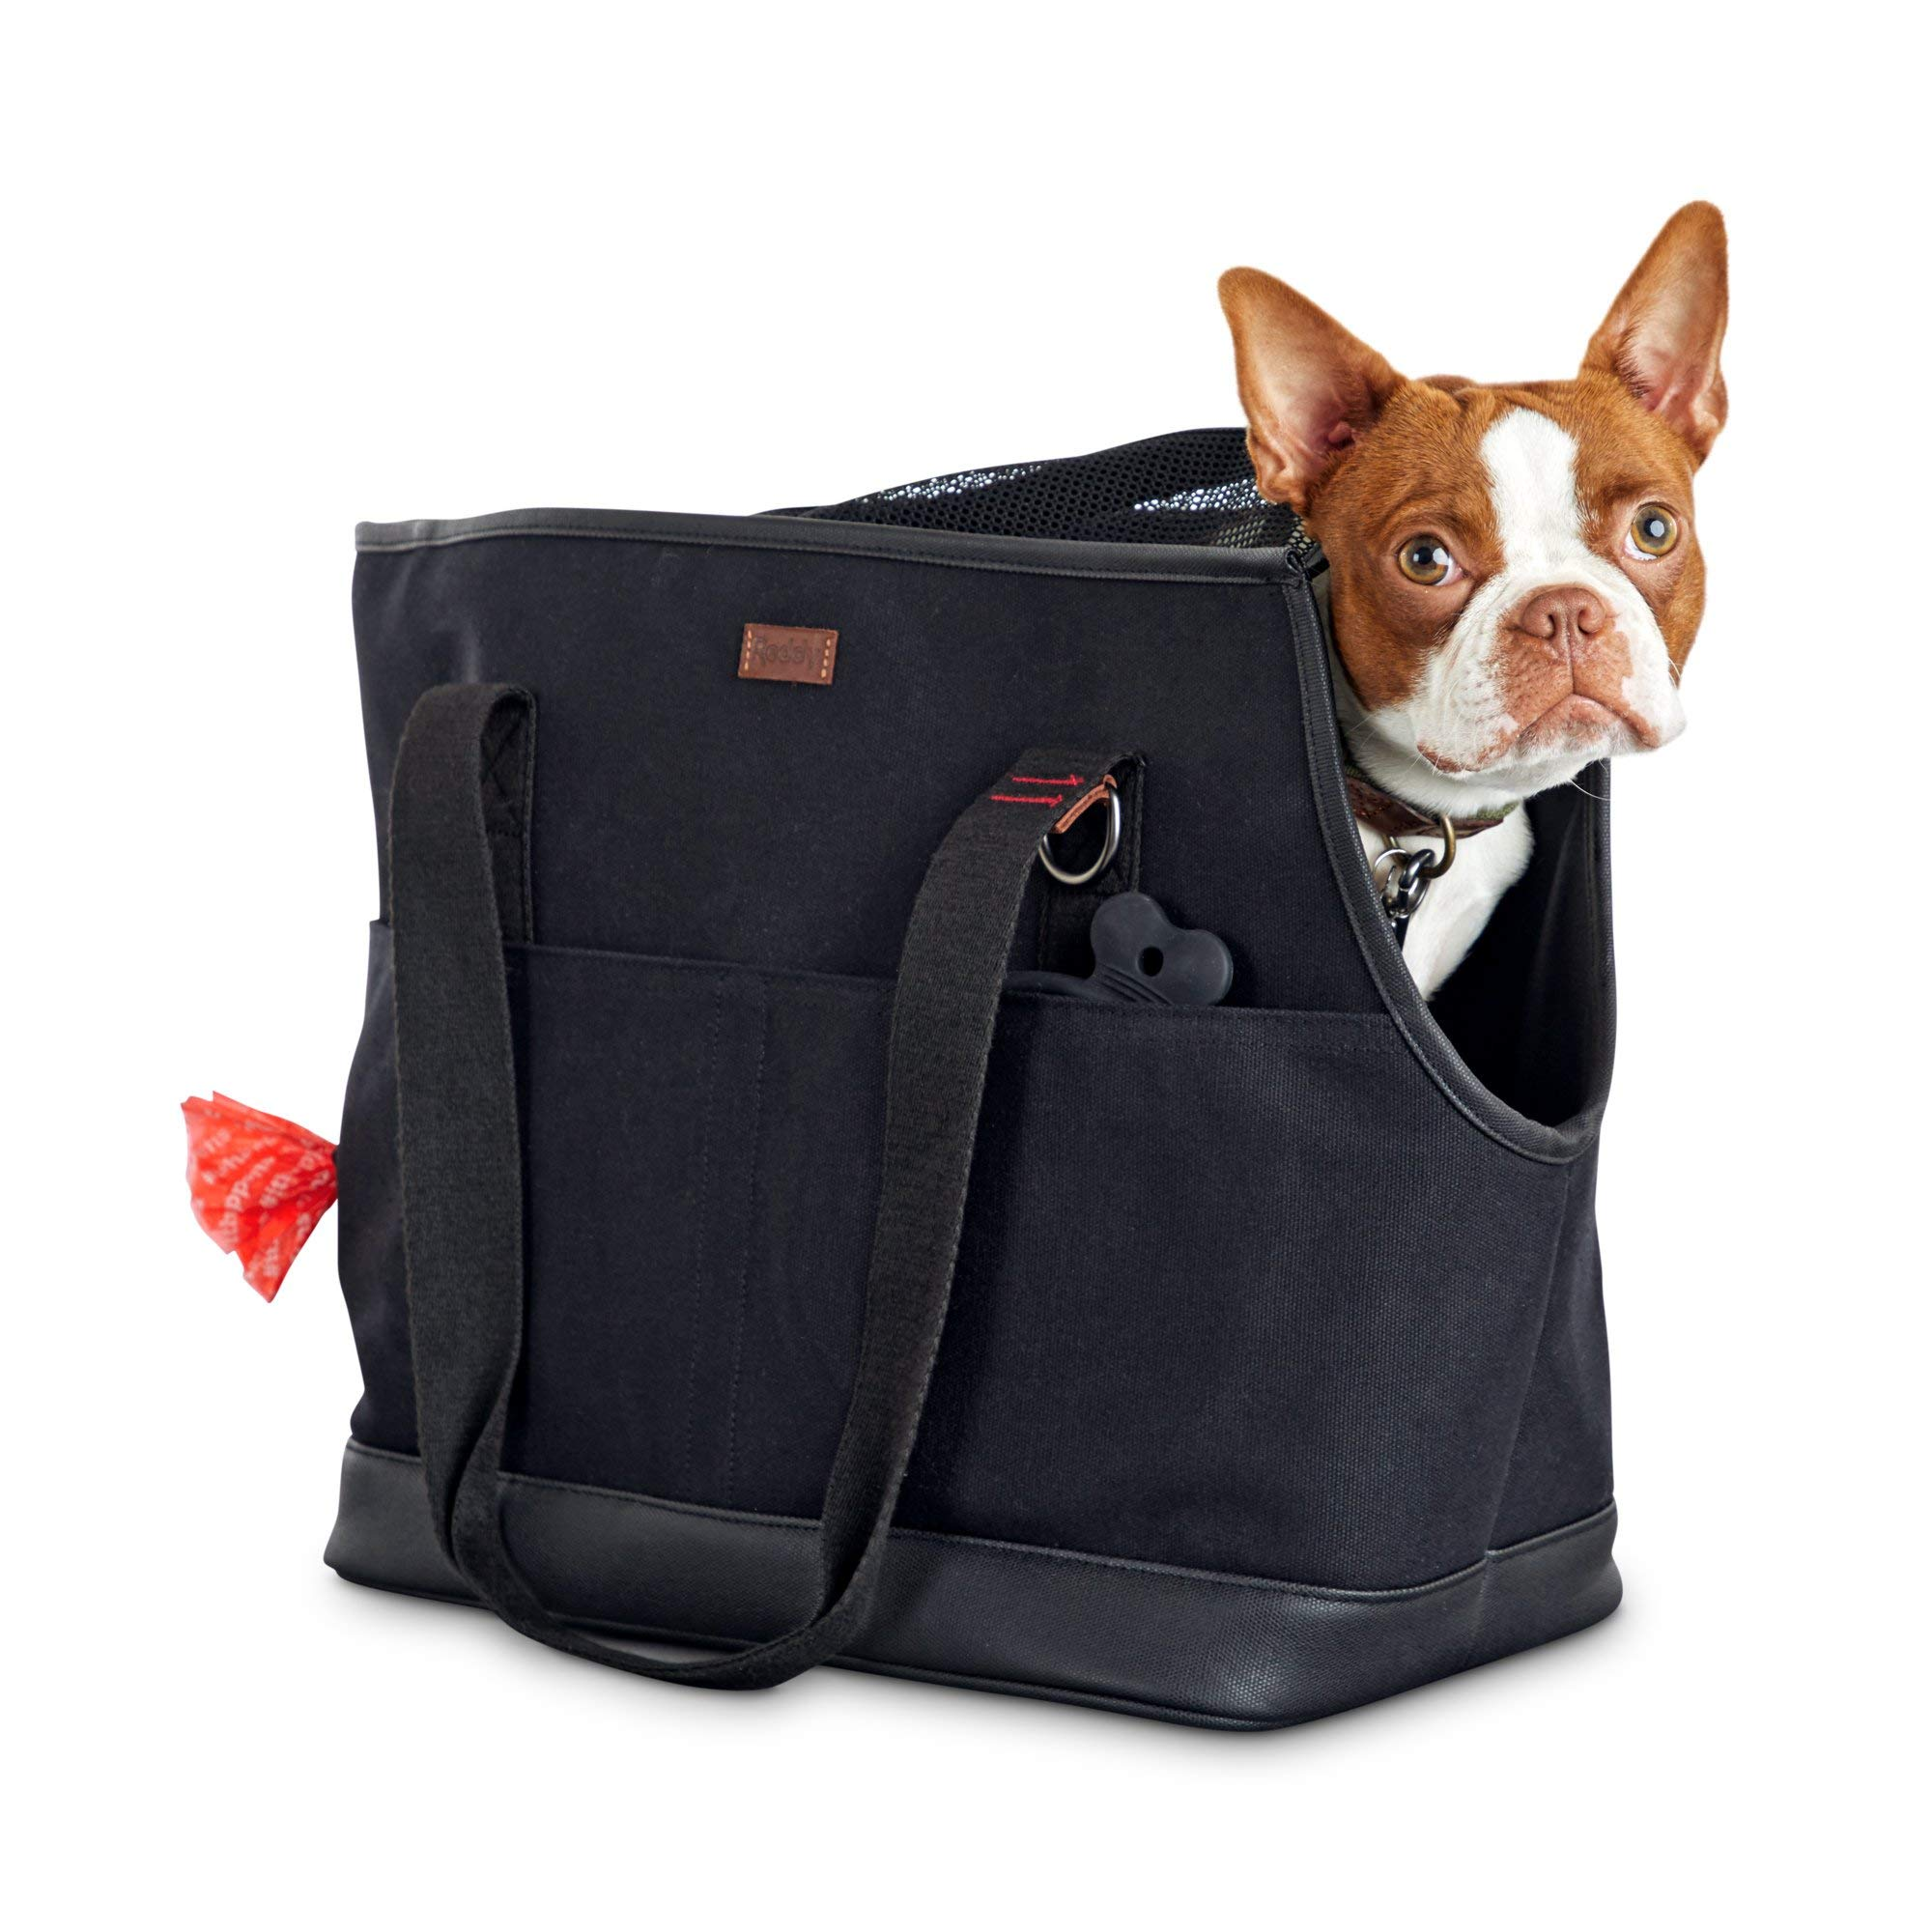 Reddy Black Canvas Dog Carrier Tote, 19'' L x 9'' W x 12'' H, Small